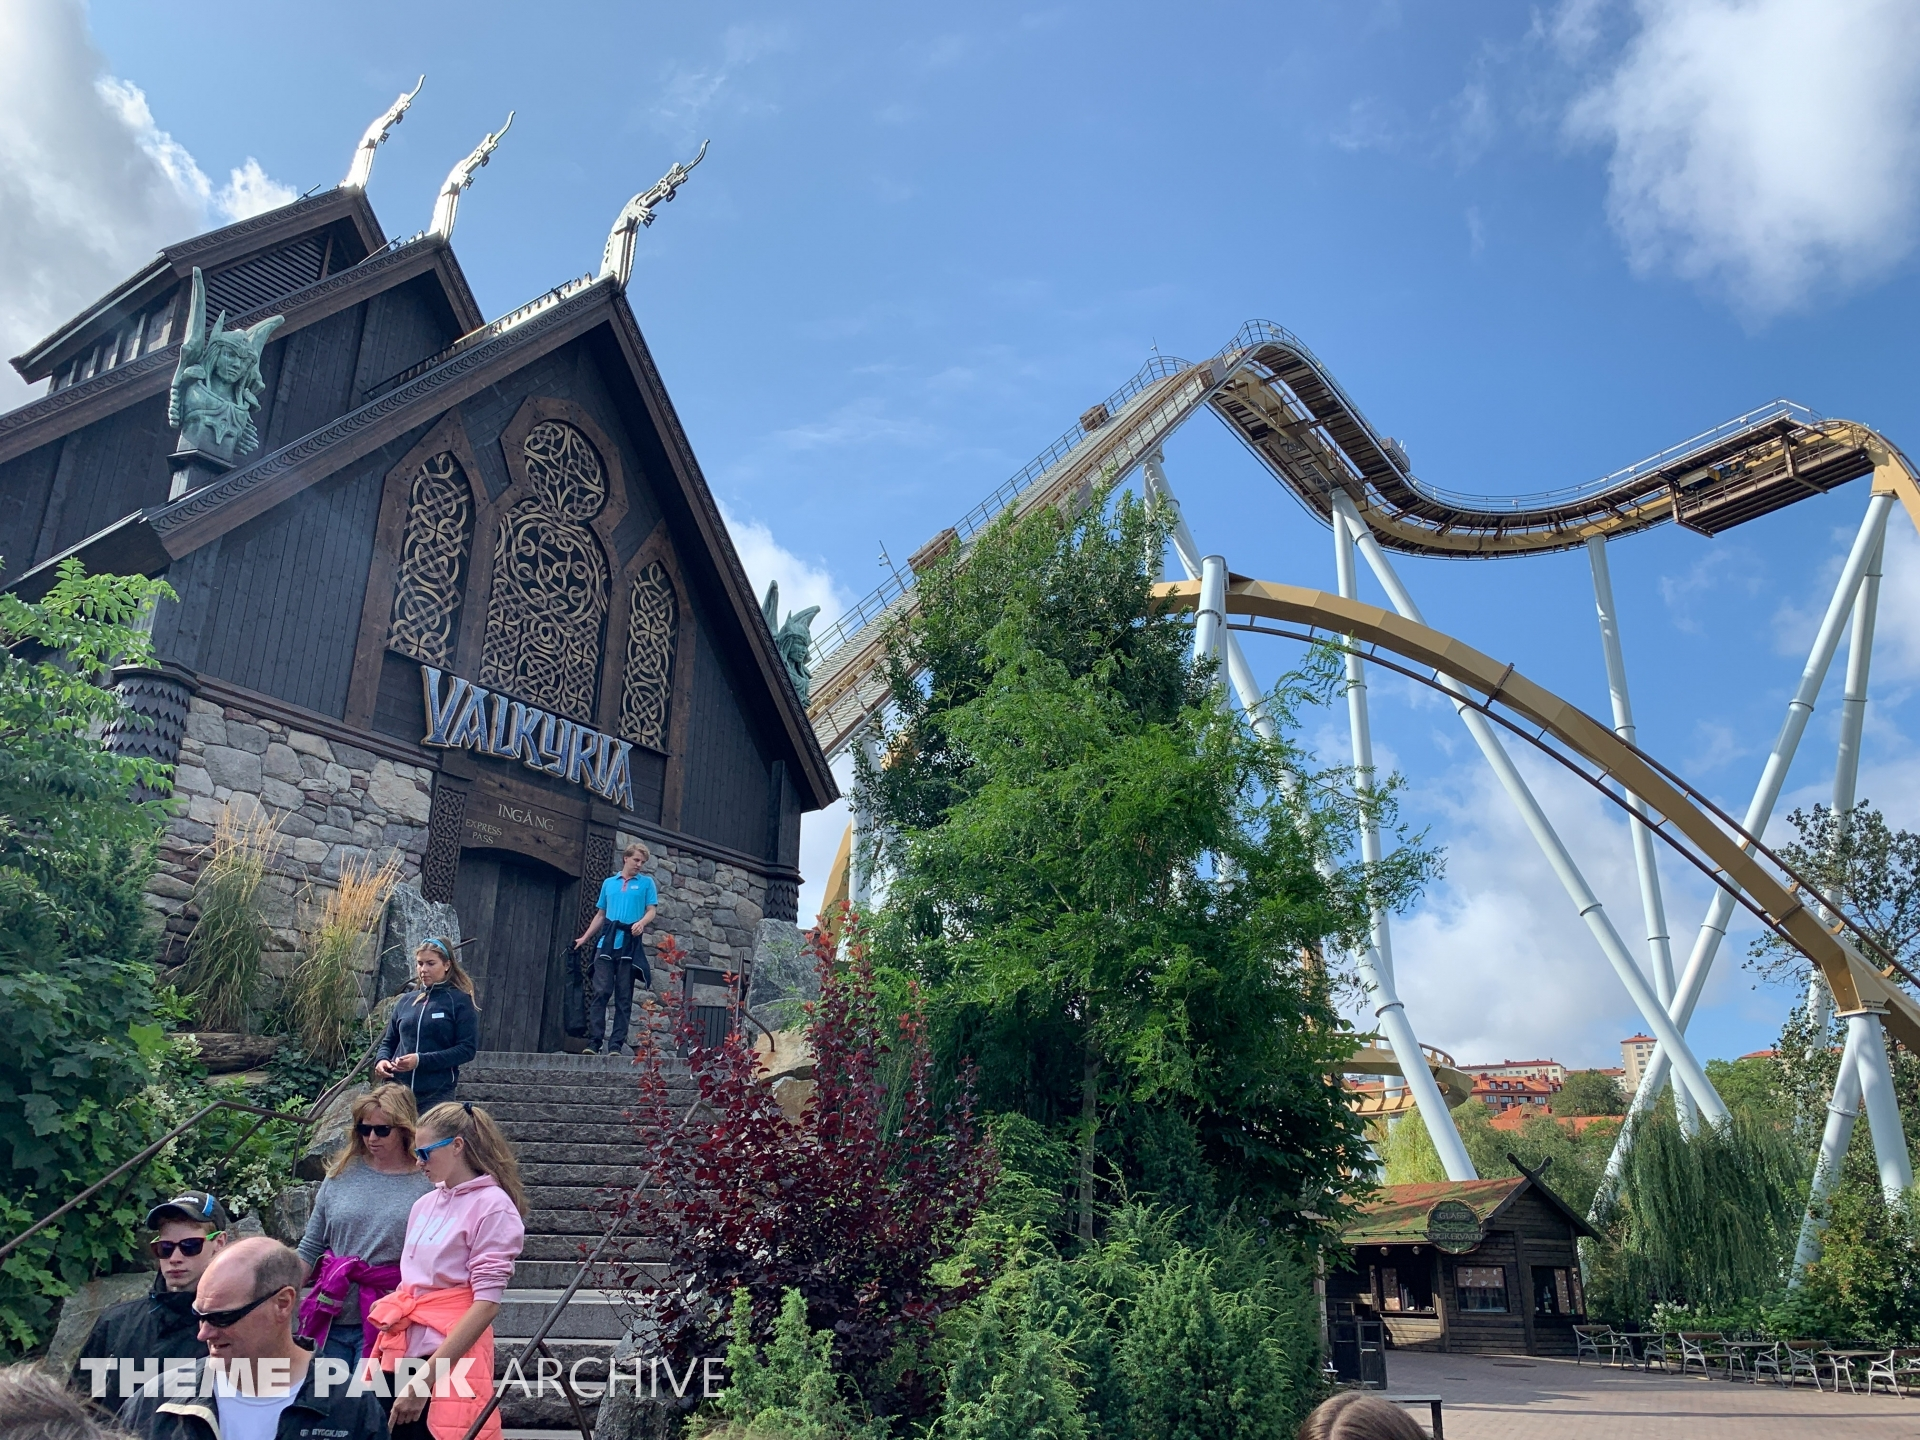 Valkyria at Liseberg